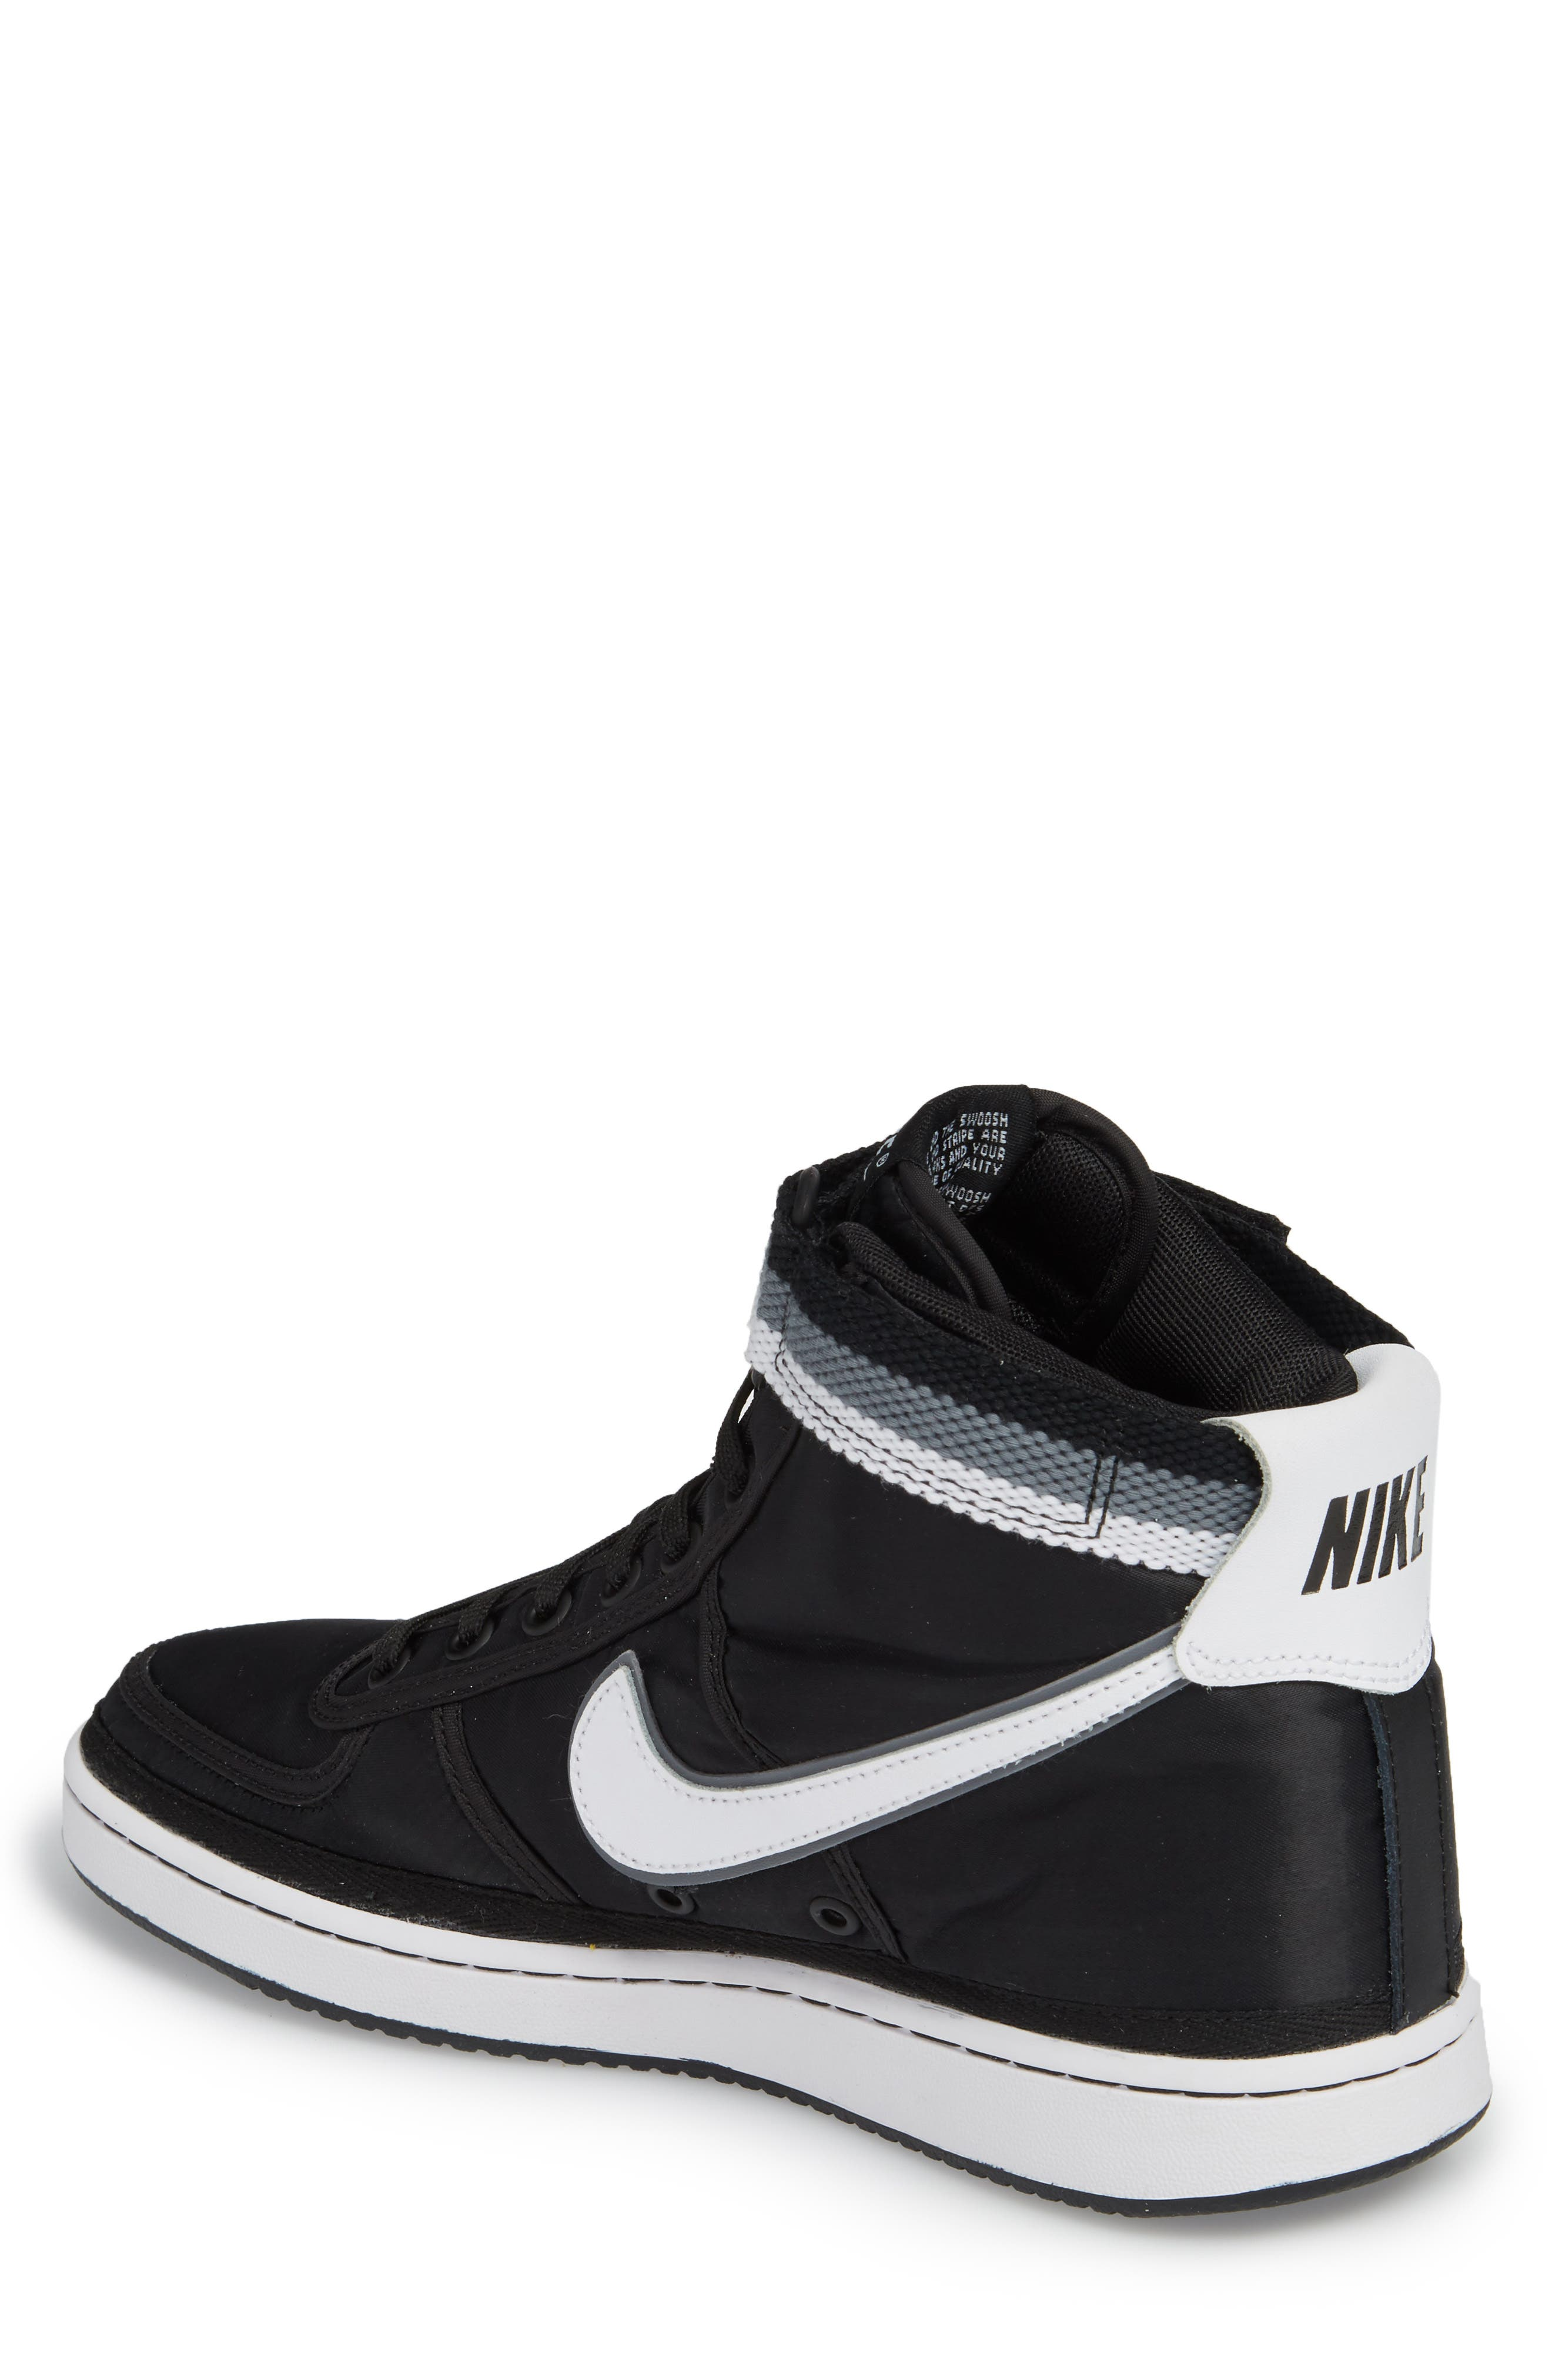 NIKE,                             Vandal High Supreme High Top Sneaker,                             Alternate thumbnail 2, color,                             001